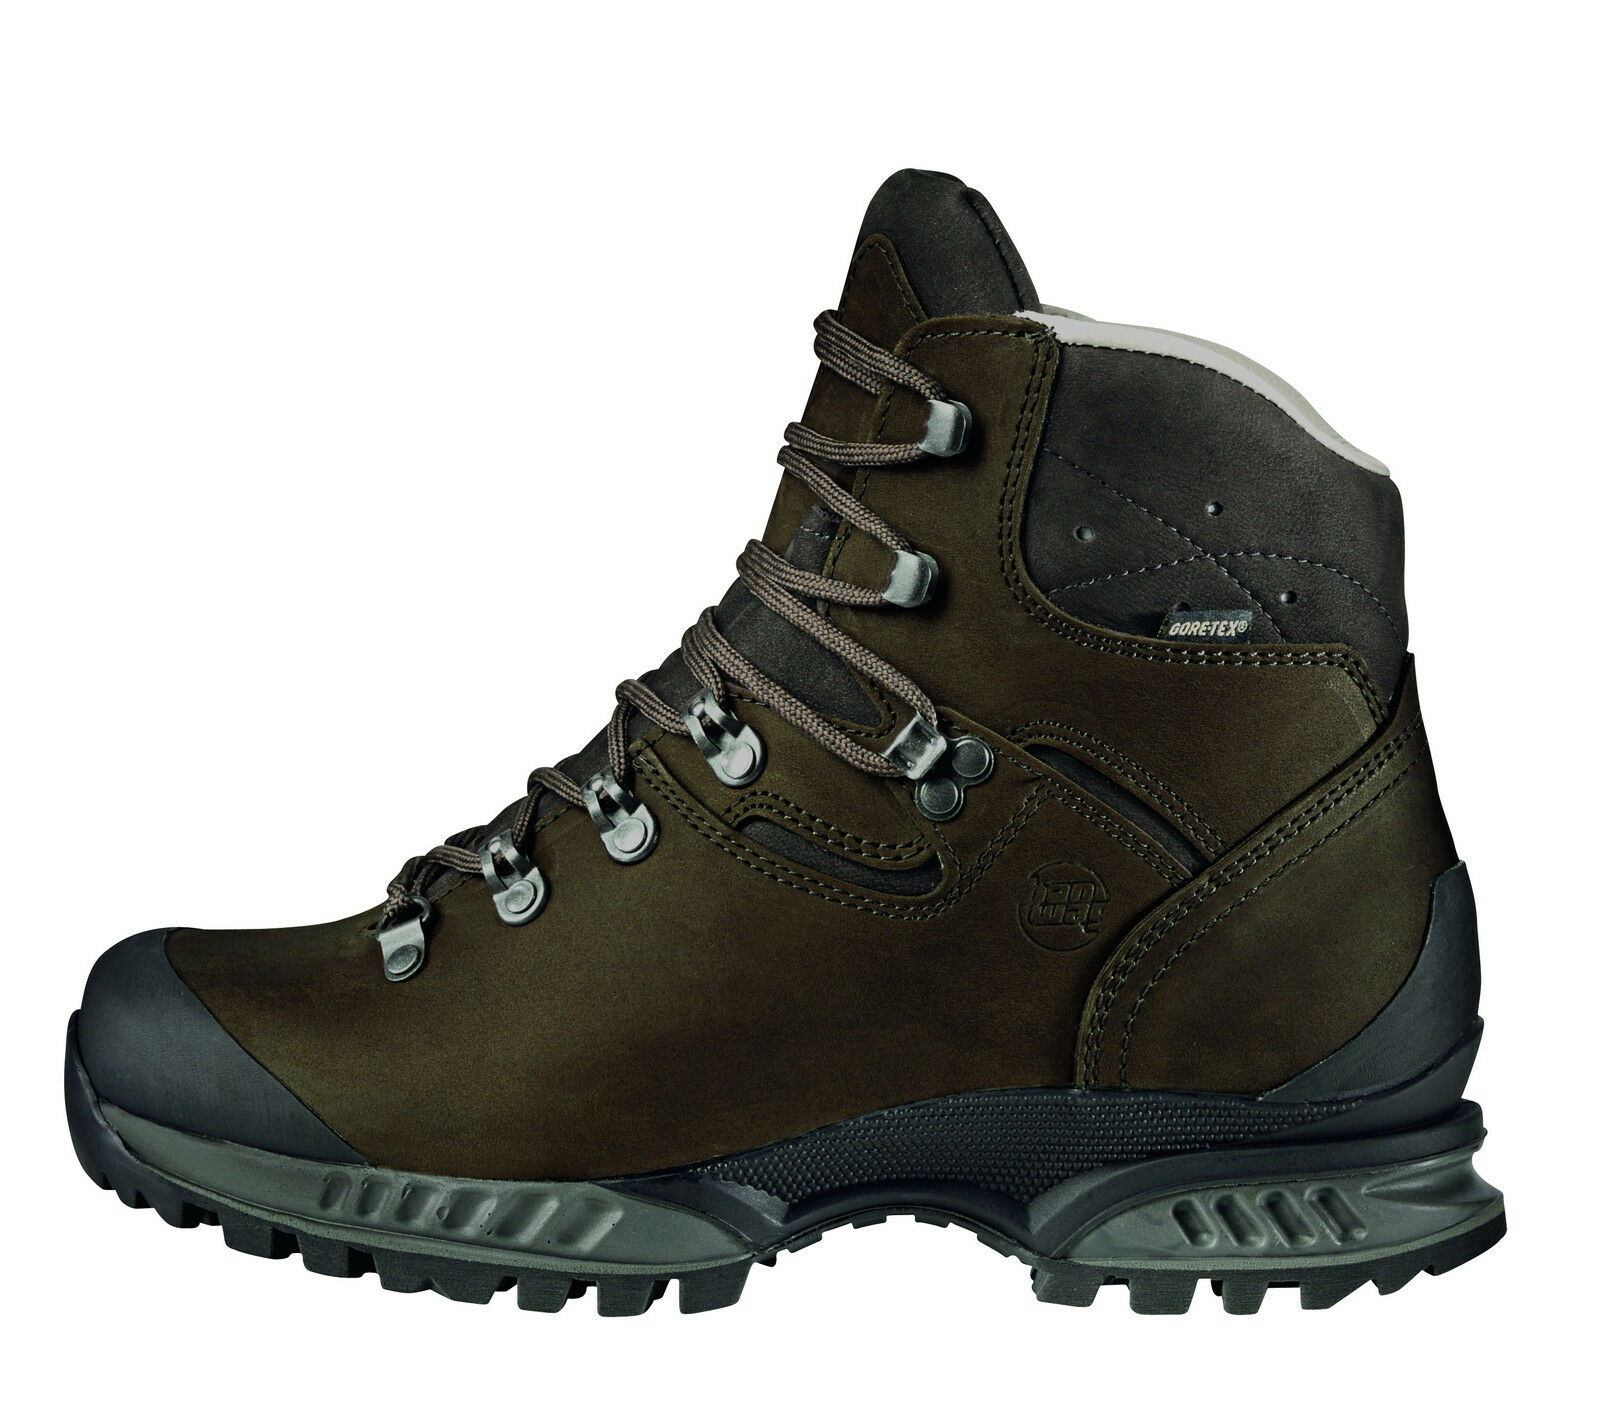 Hanwag Mountain shoes  Tatra Lady Leather  Size 5 - 38 Earth  hot sale online